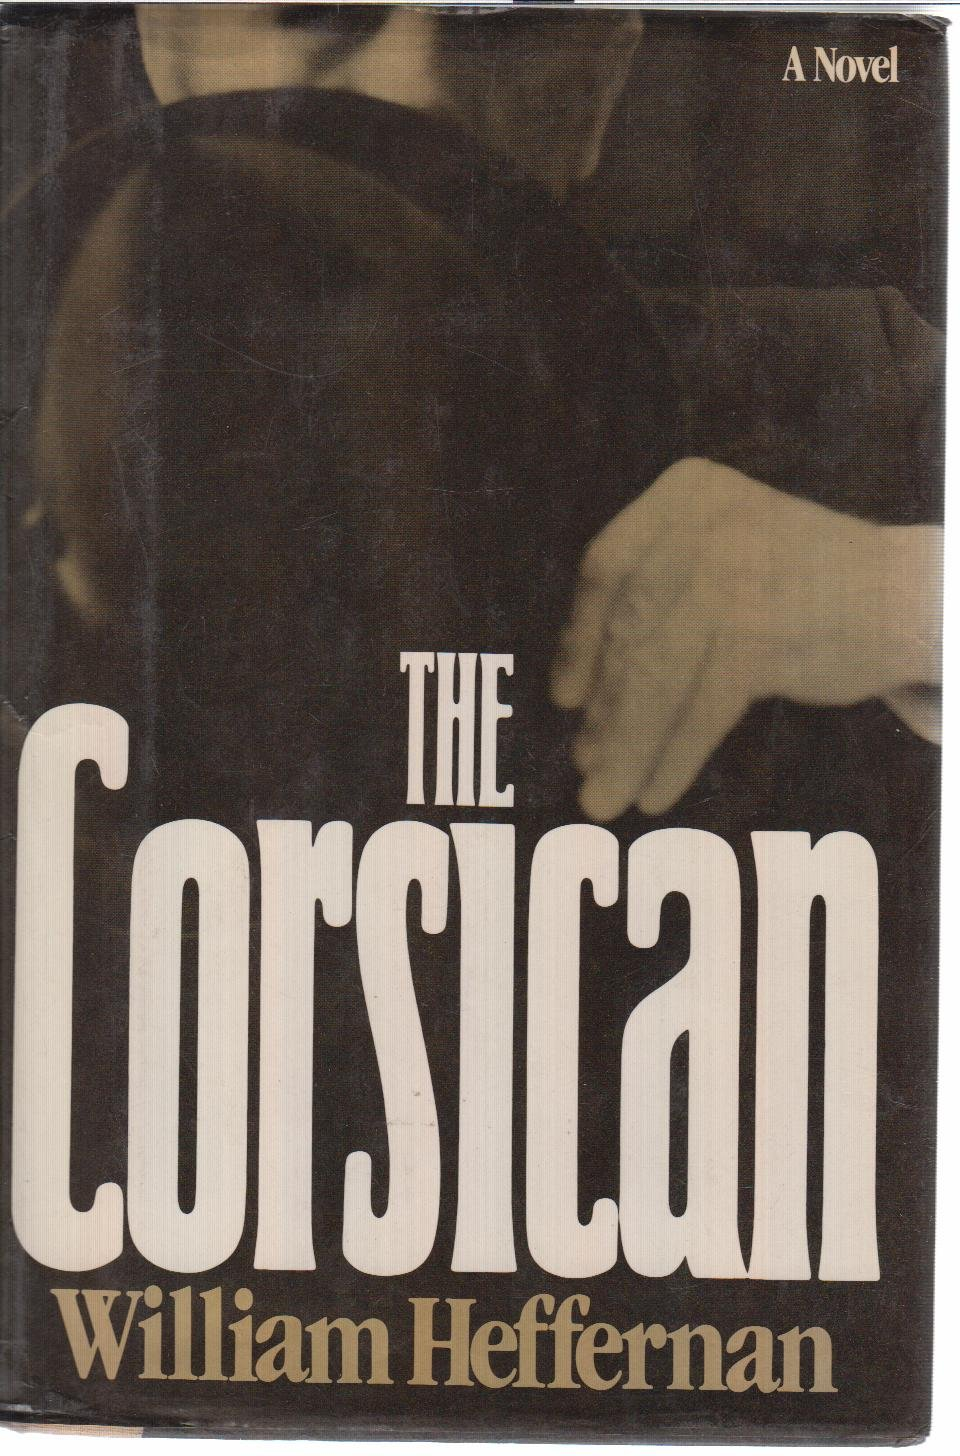 The Corsican: A Novel: William Heffernan: 9780671449094: Amazon.com ...